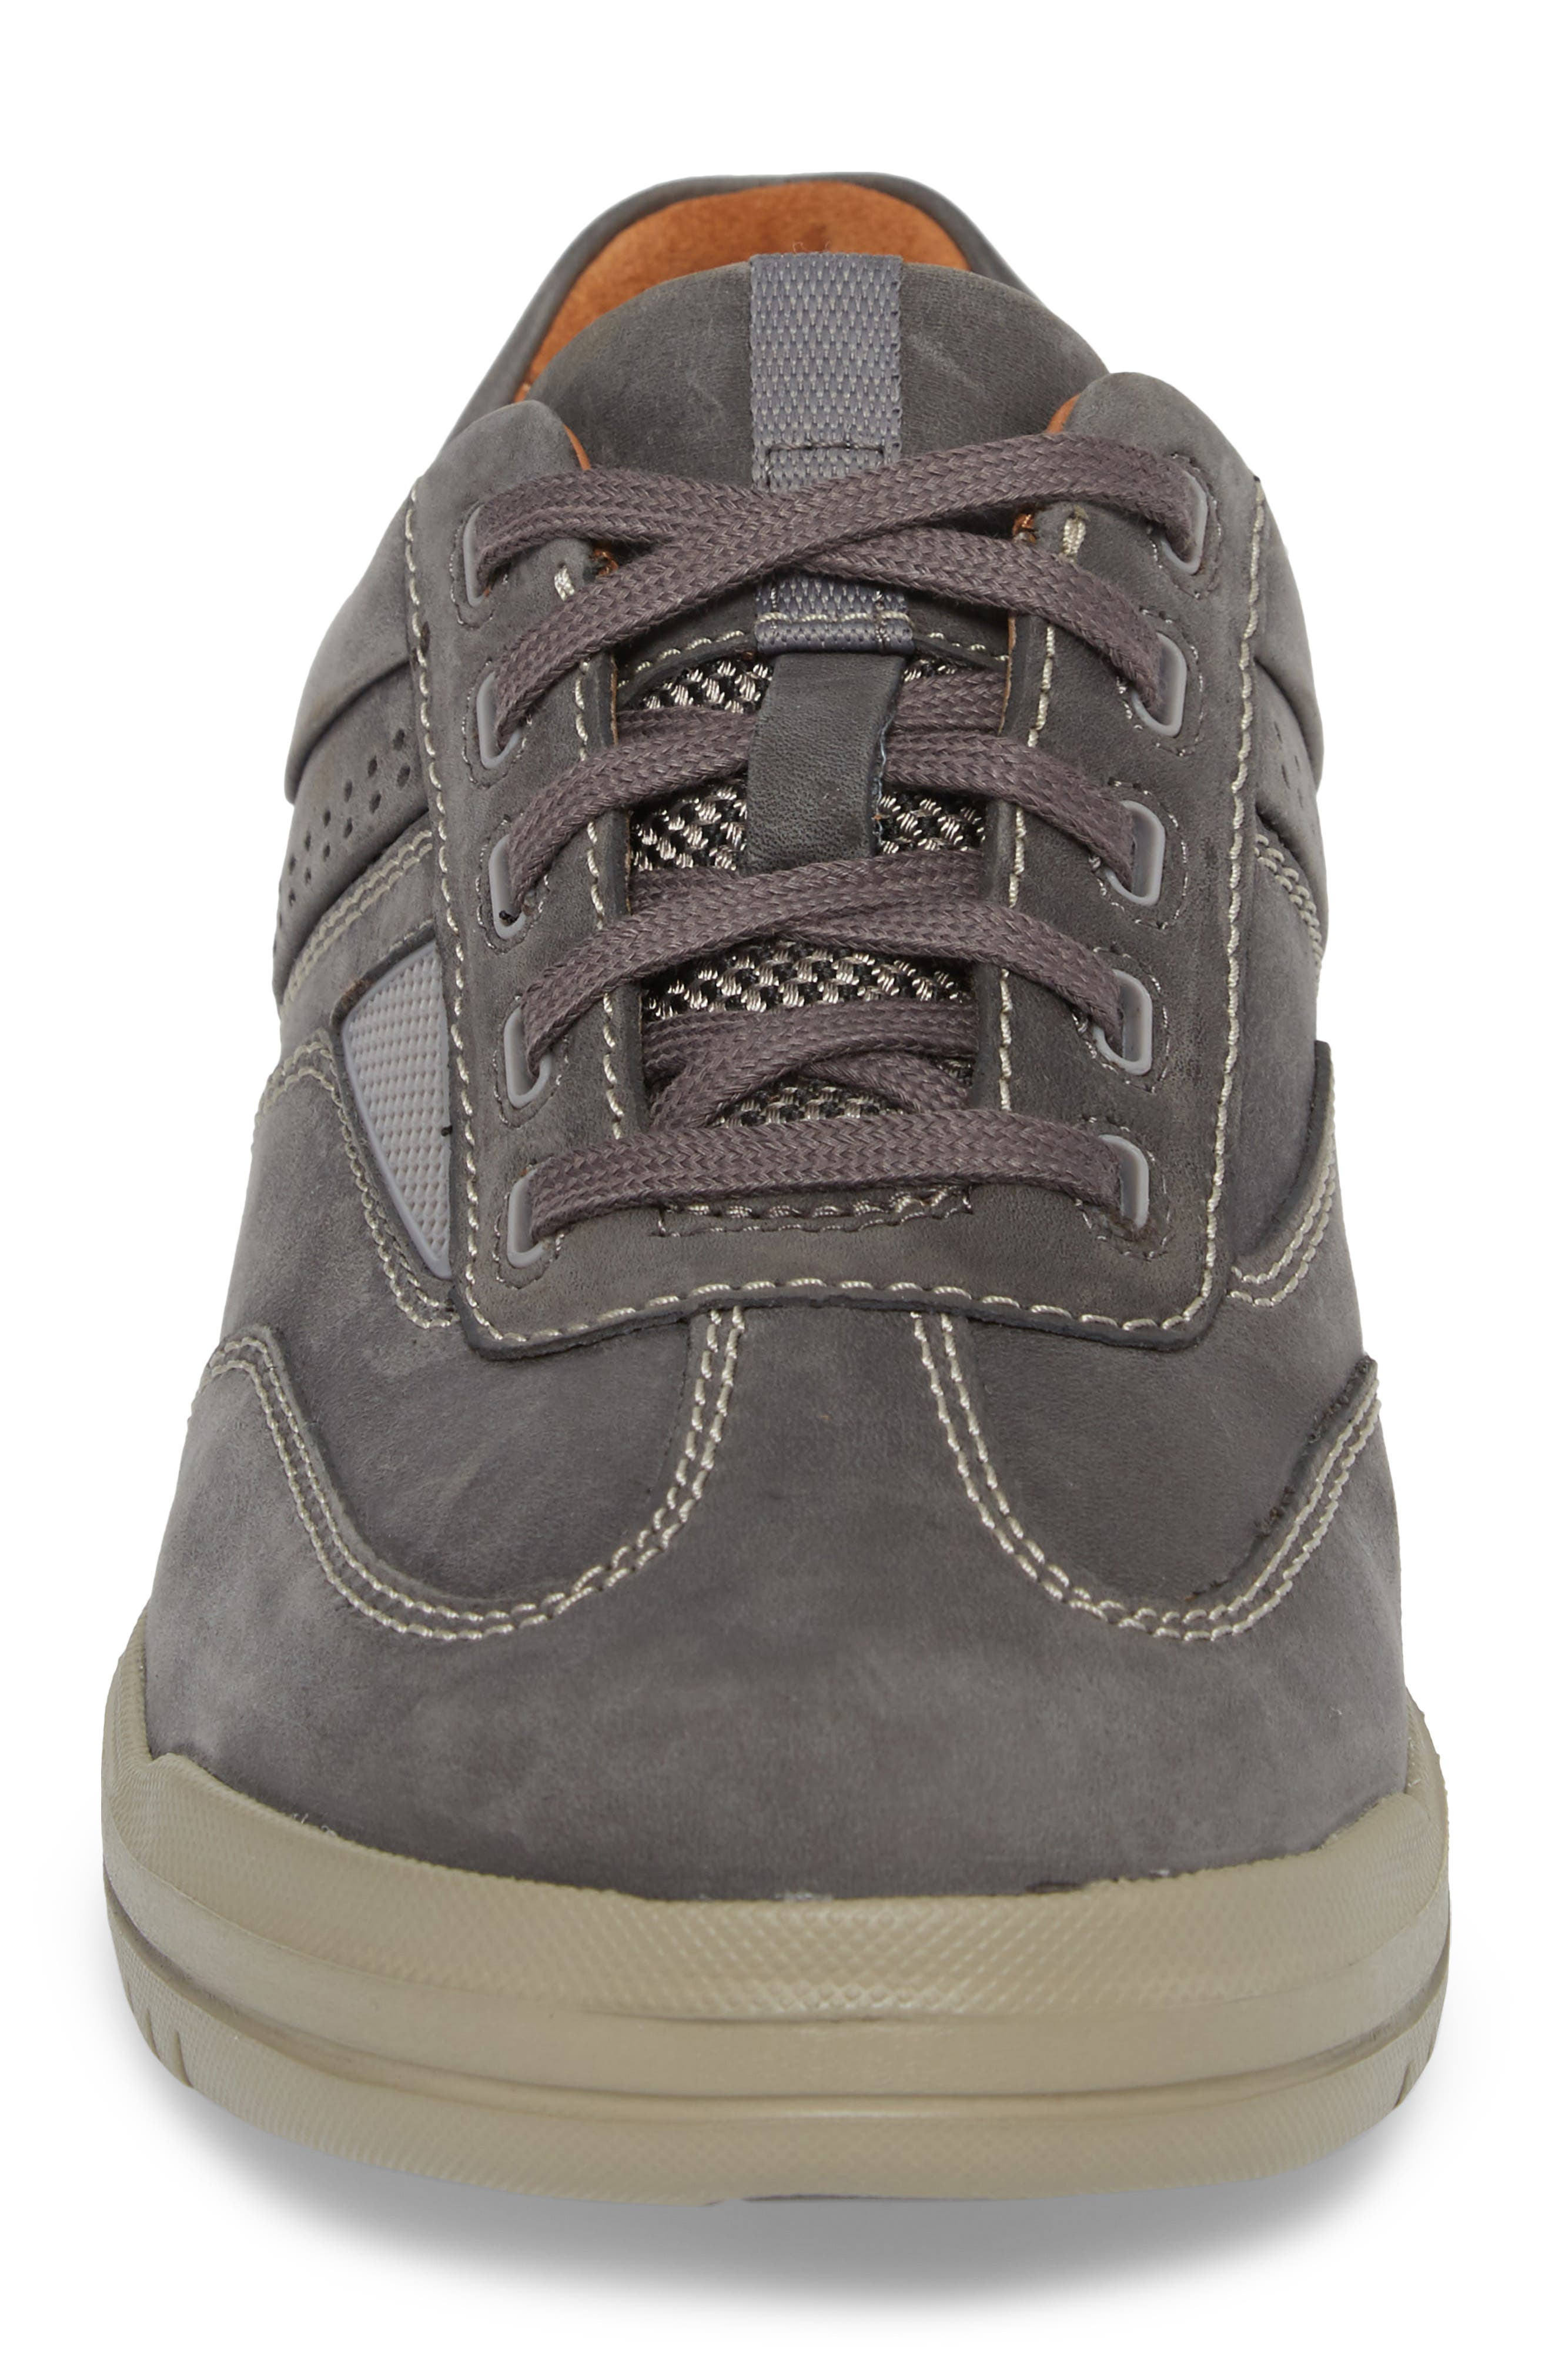 Unrhombus Low Top Sneaker,                             Alternate thumbnail 4, color,                             Dark Grey Leather